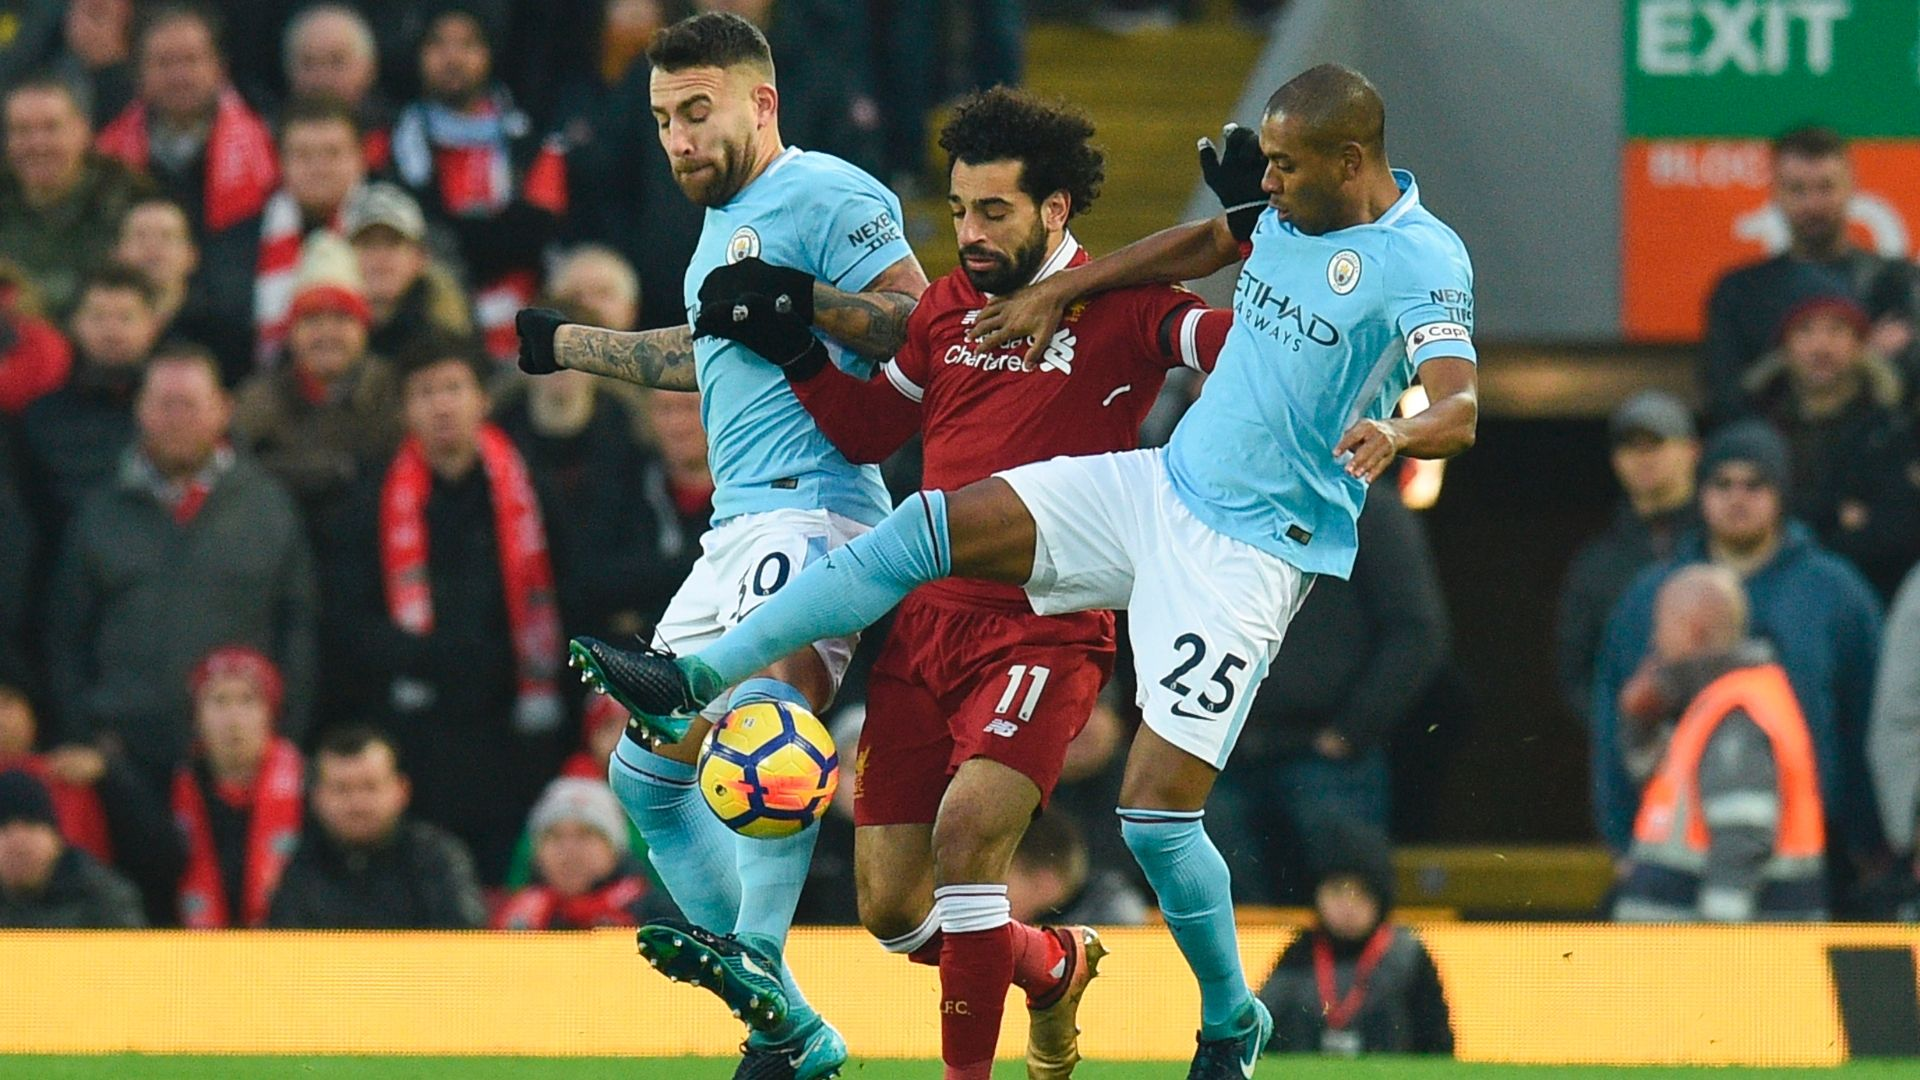 soi-keo-manchester-city-vs-liverpool-luc-2h15-ngay-3-7-2020-1